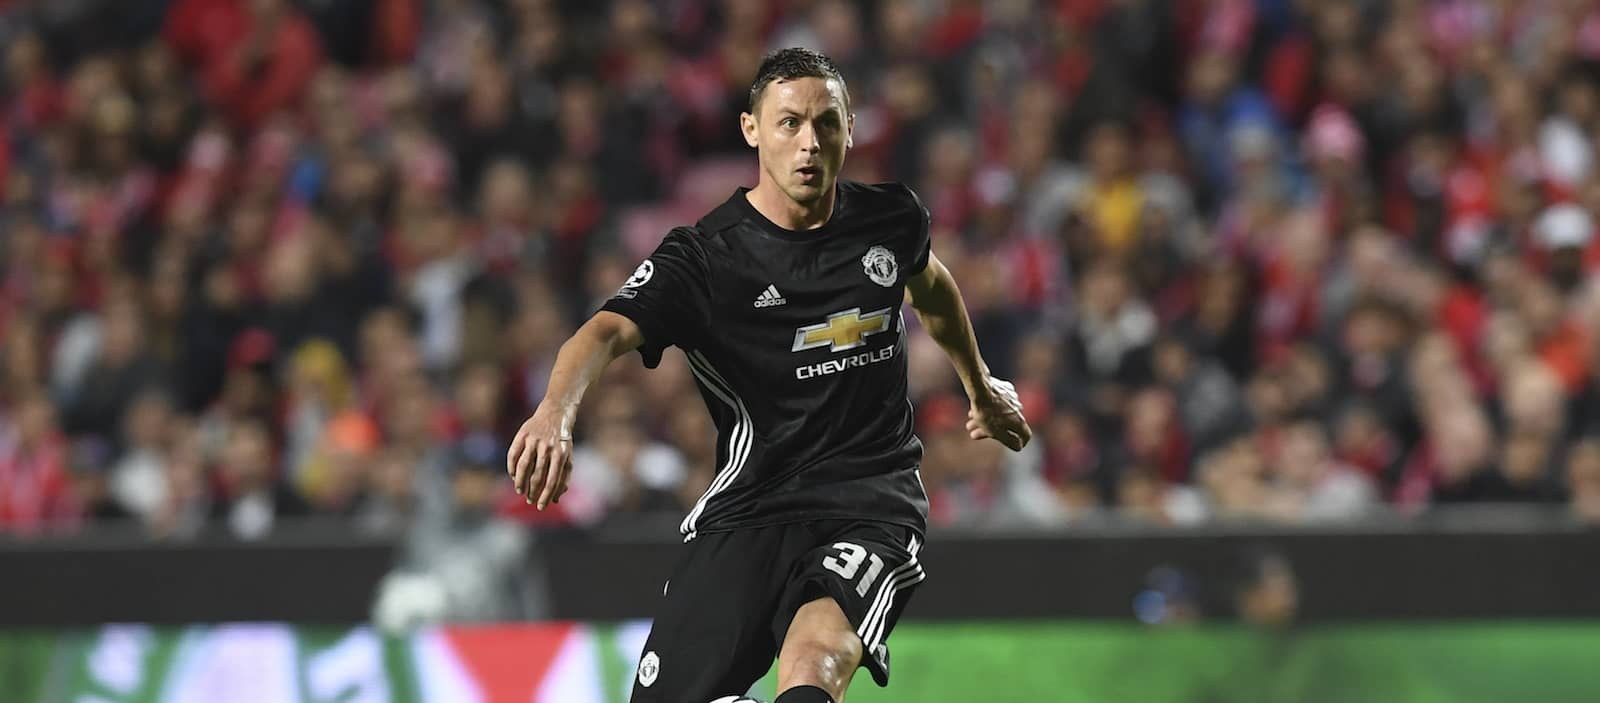 Steven Gerrard: Nemanja Matic is one of the toughest players I've ever faced